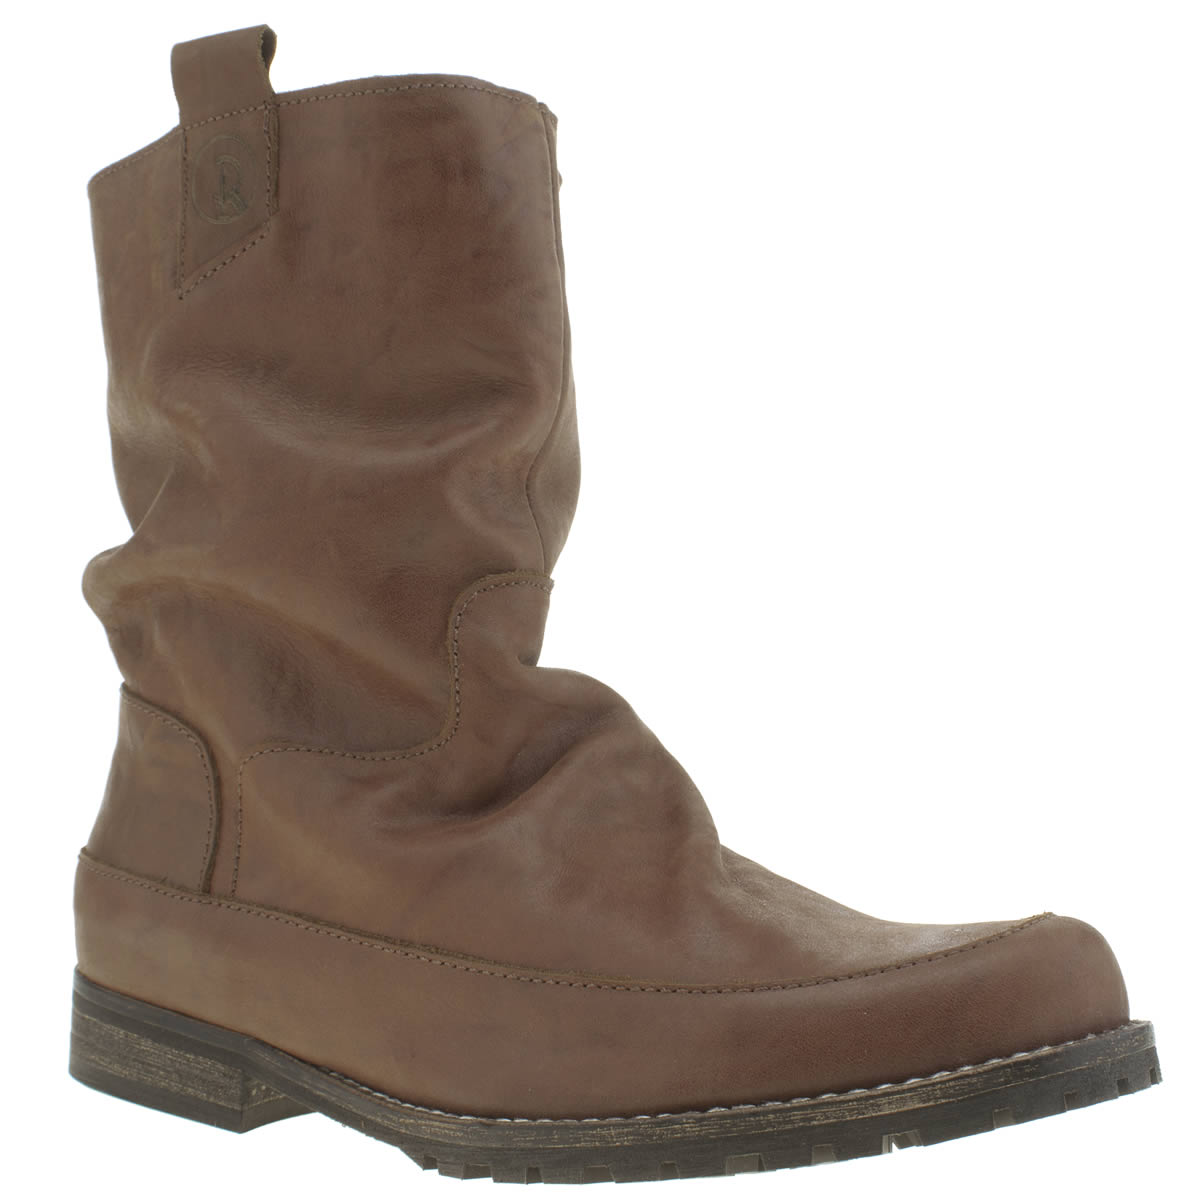 Cheap ugg type boots - Ugg Type Boots Cheap